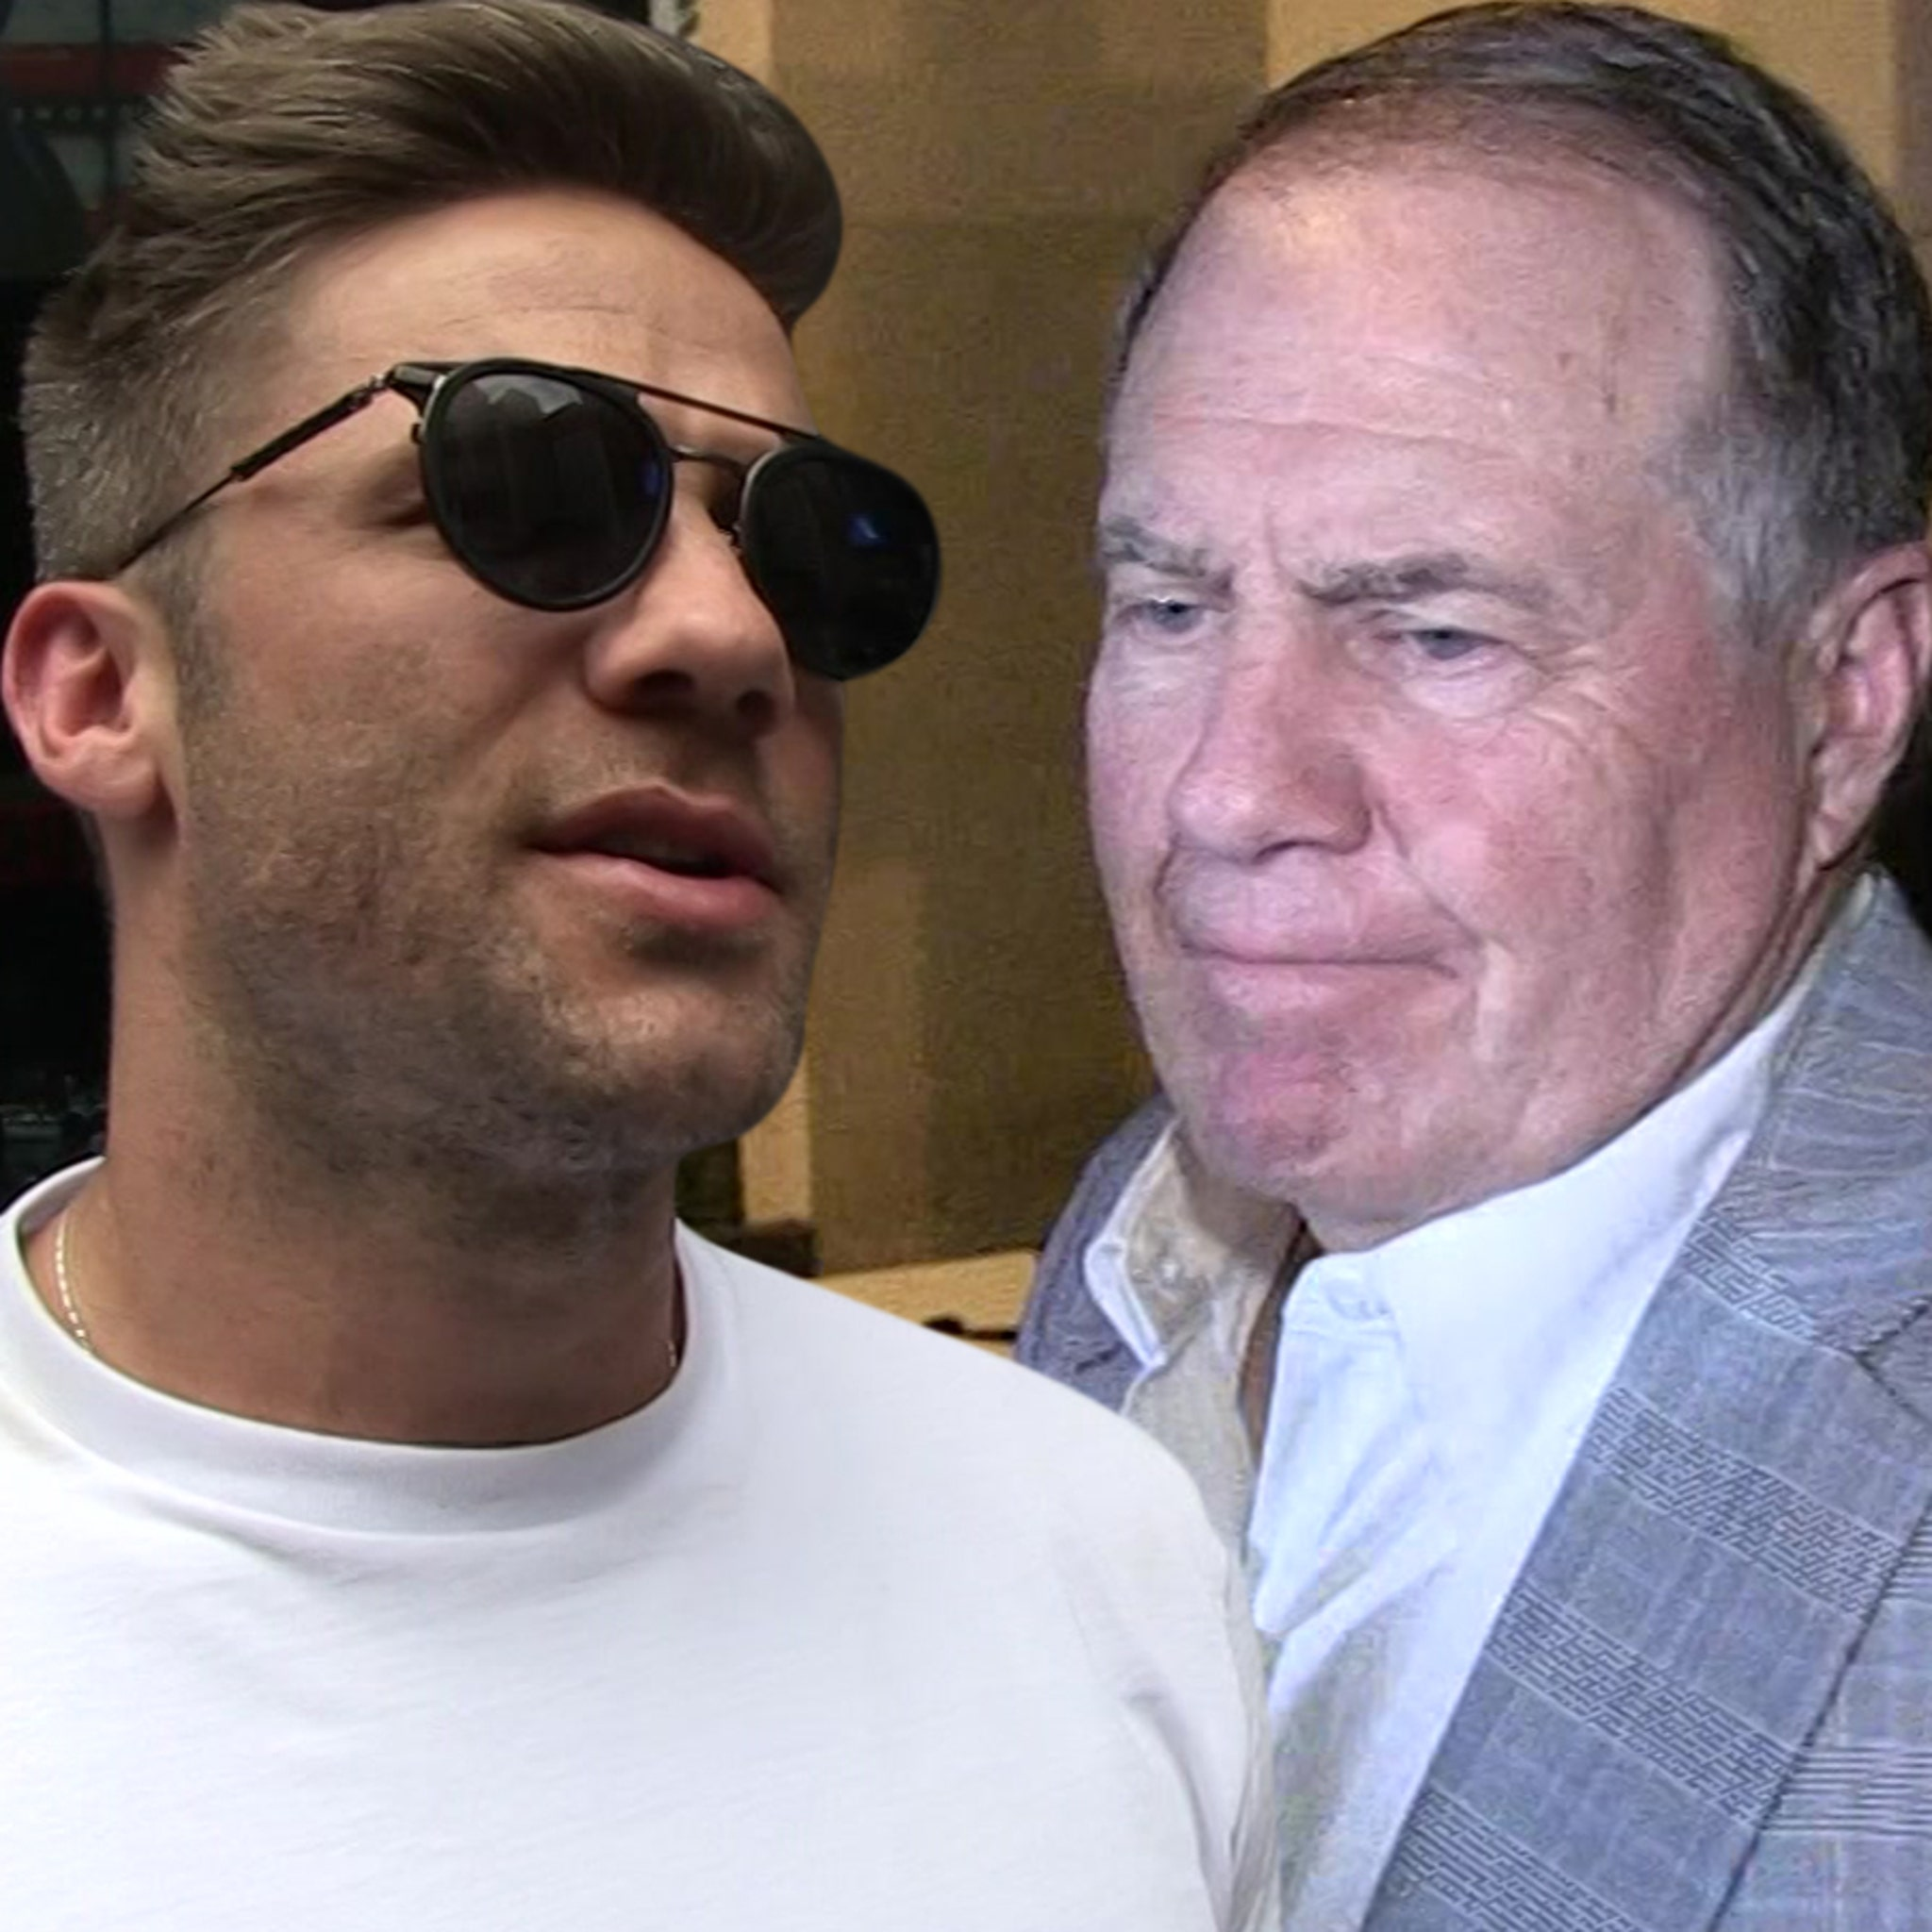 Julian Edelman Says He Once Caught Bill Belichick Dong-Out in Team Hot Tub